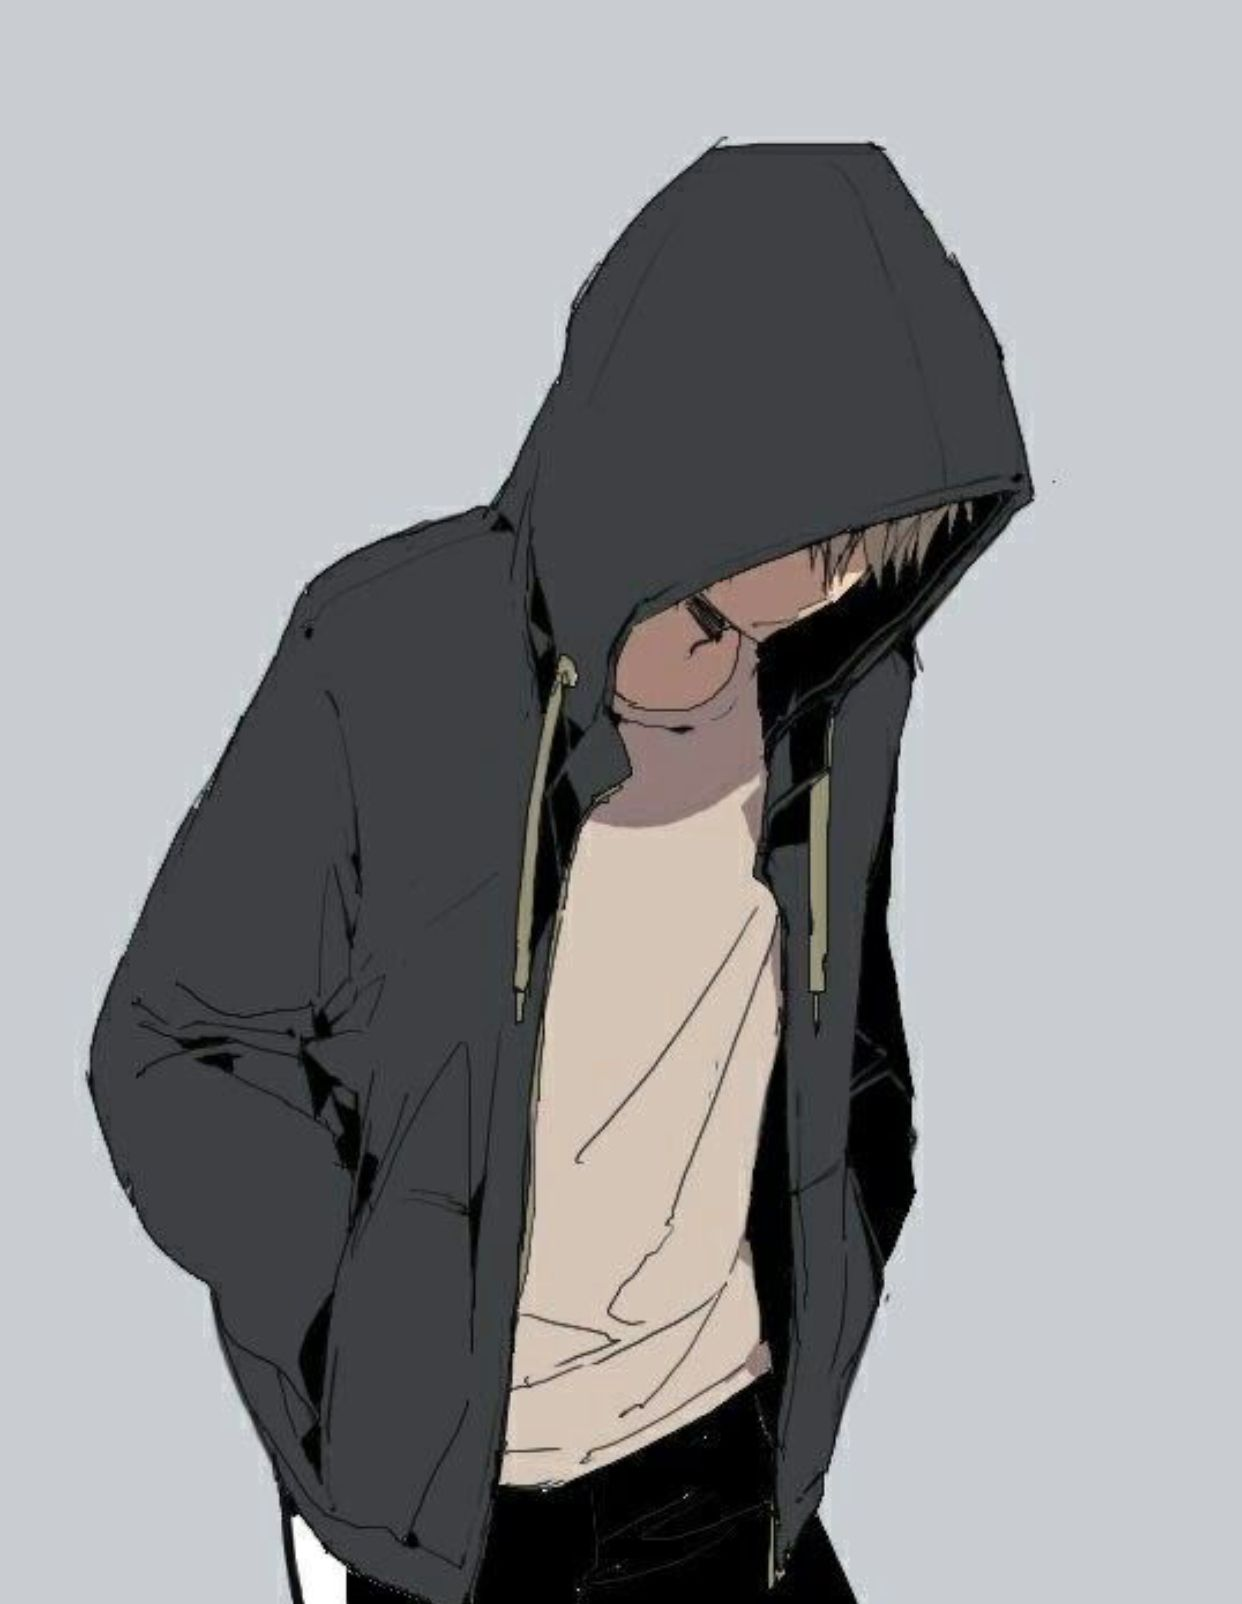 Hooded Sad Anime Boy Wallpapers Wallpaper Cave